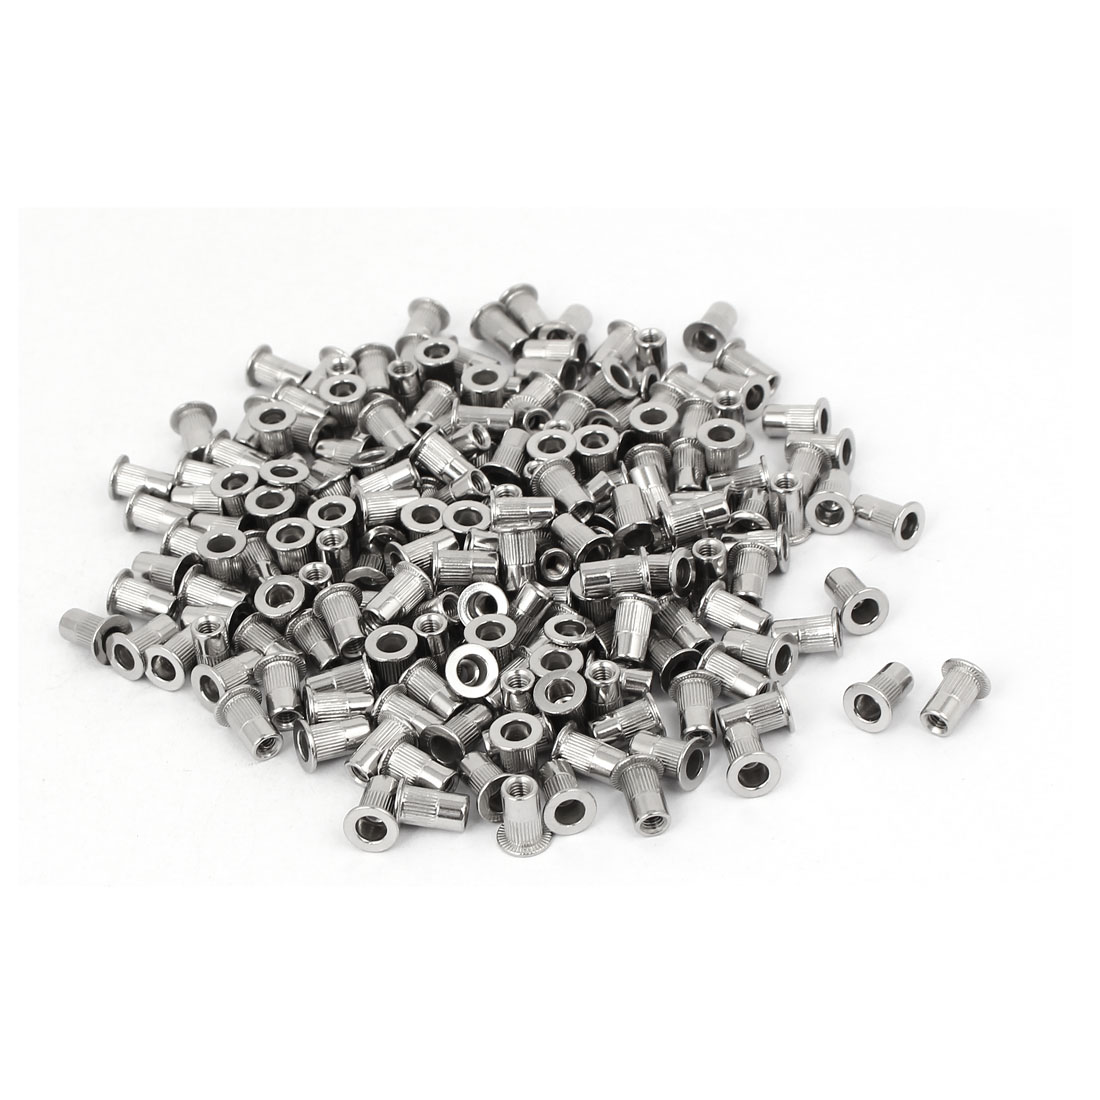 M3 x 0.5mm 304 Stainless Steel Knurled Rivet Nut Insert Nutsert 200PCS